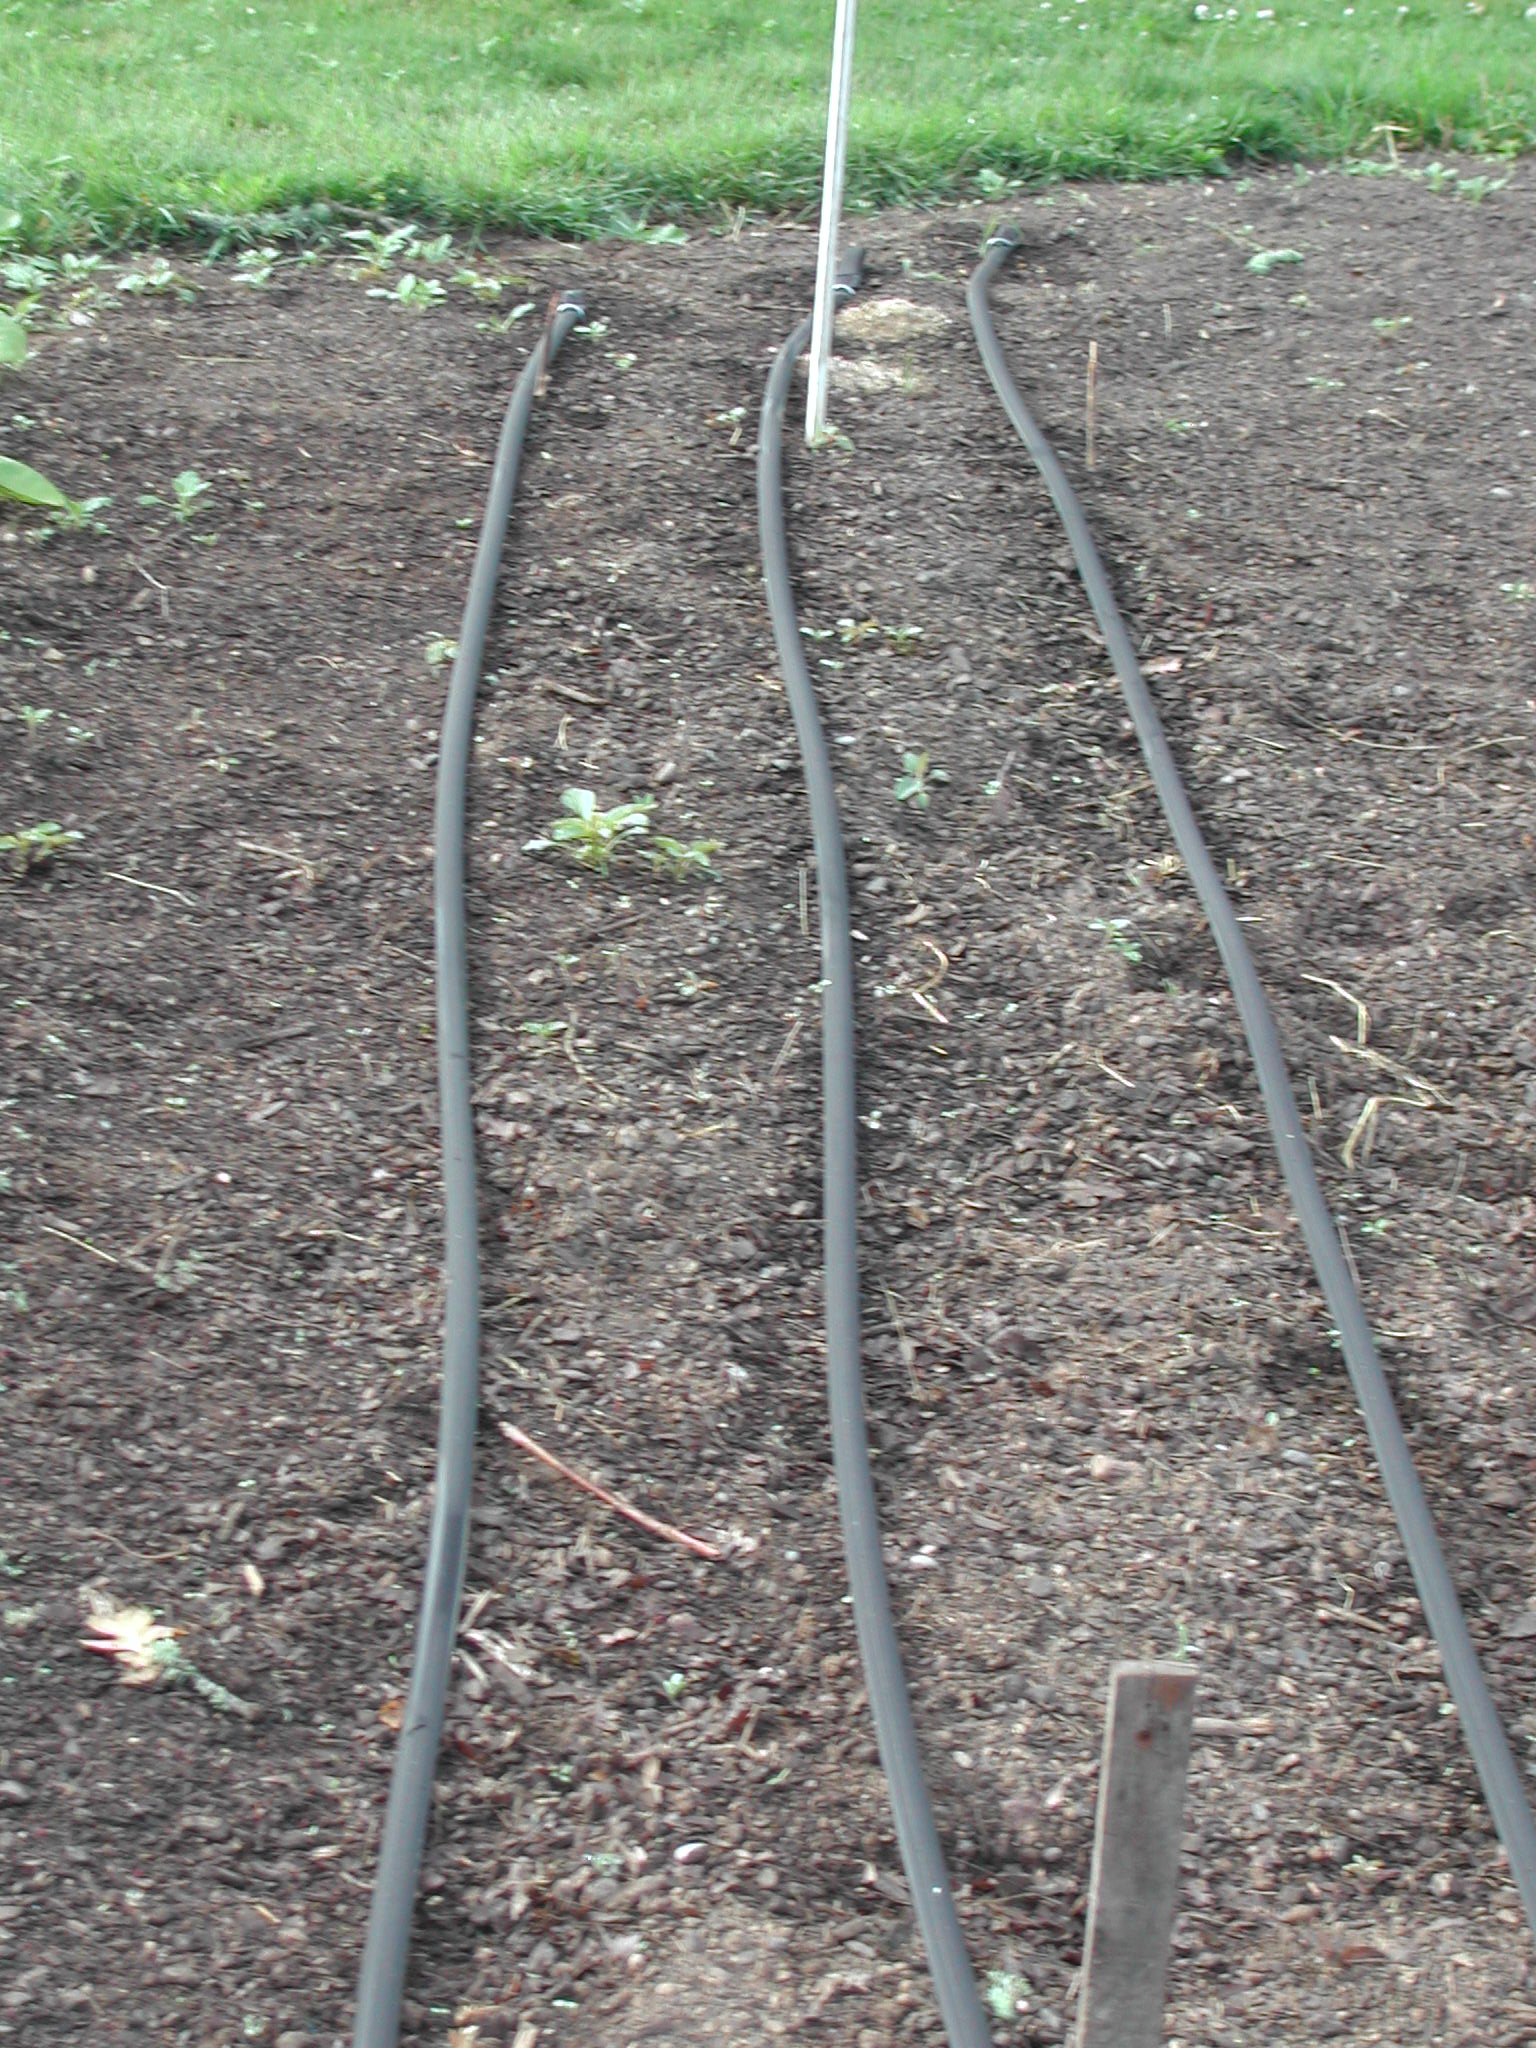 T-tape ready to irrigate the beans.